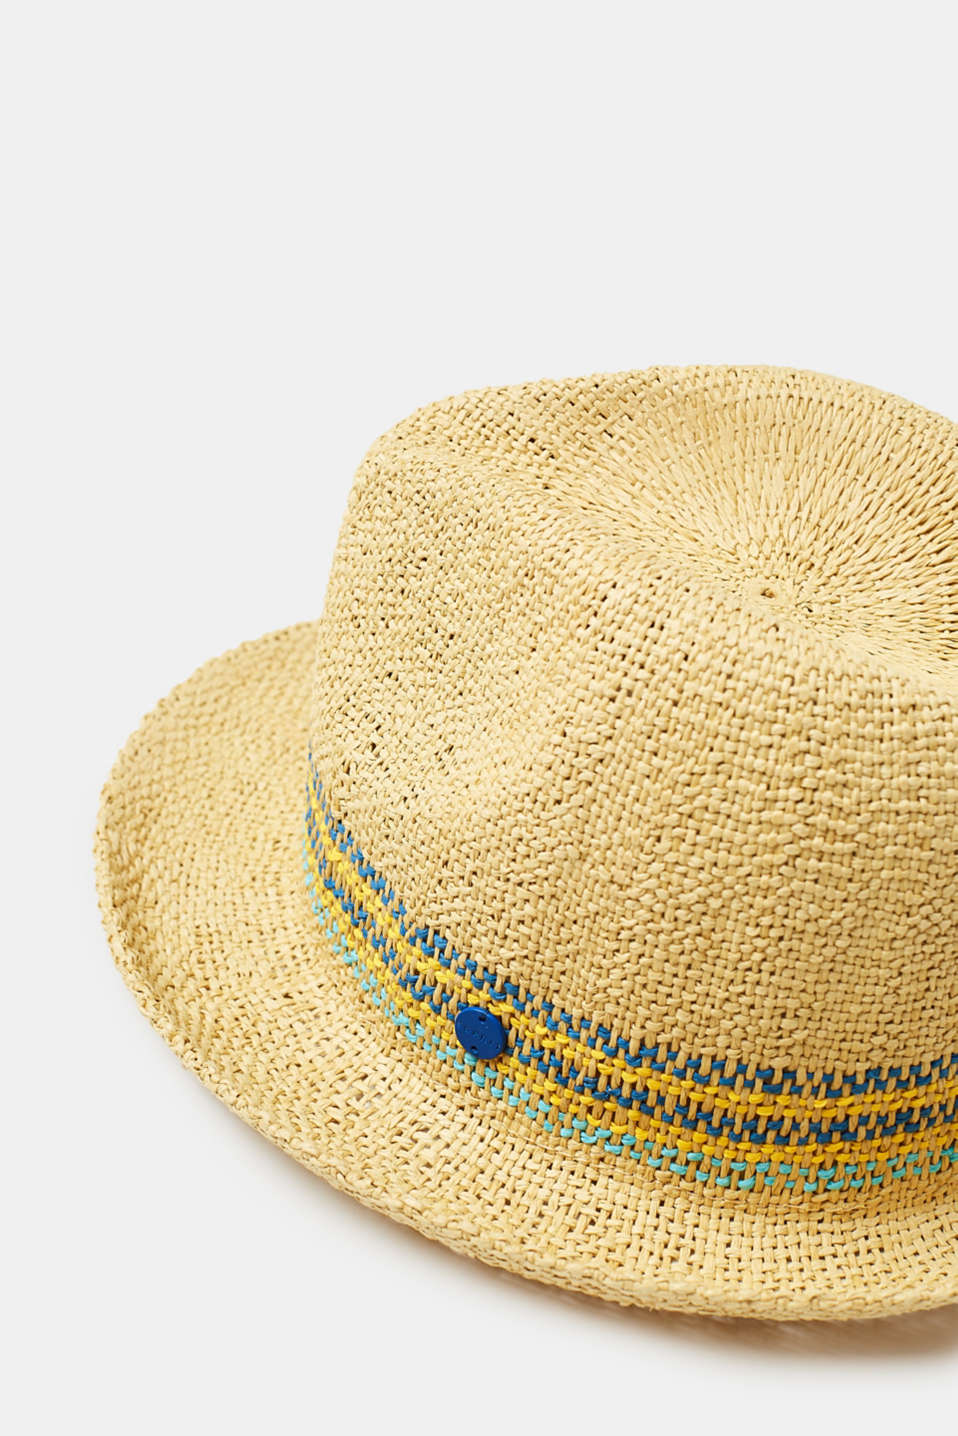 Lightweight straw hat with stripes